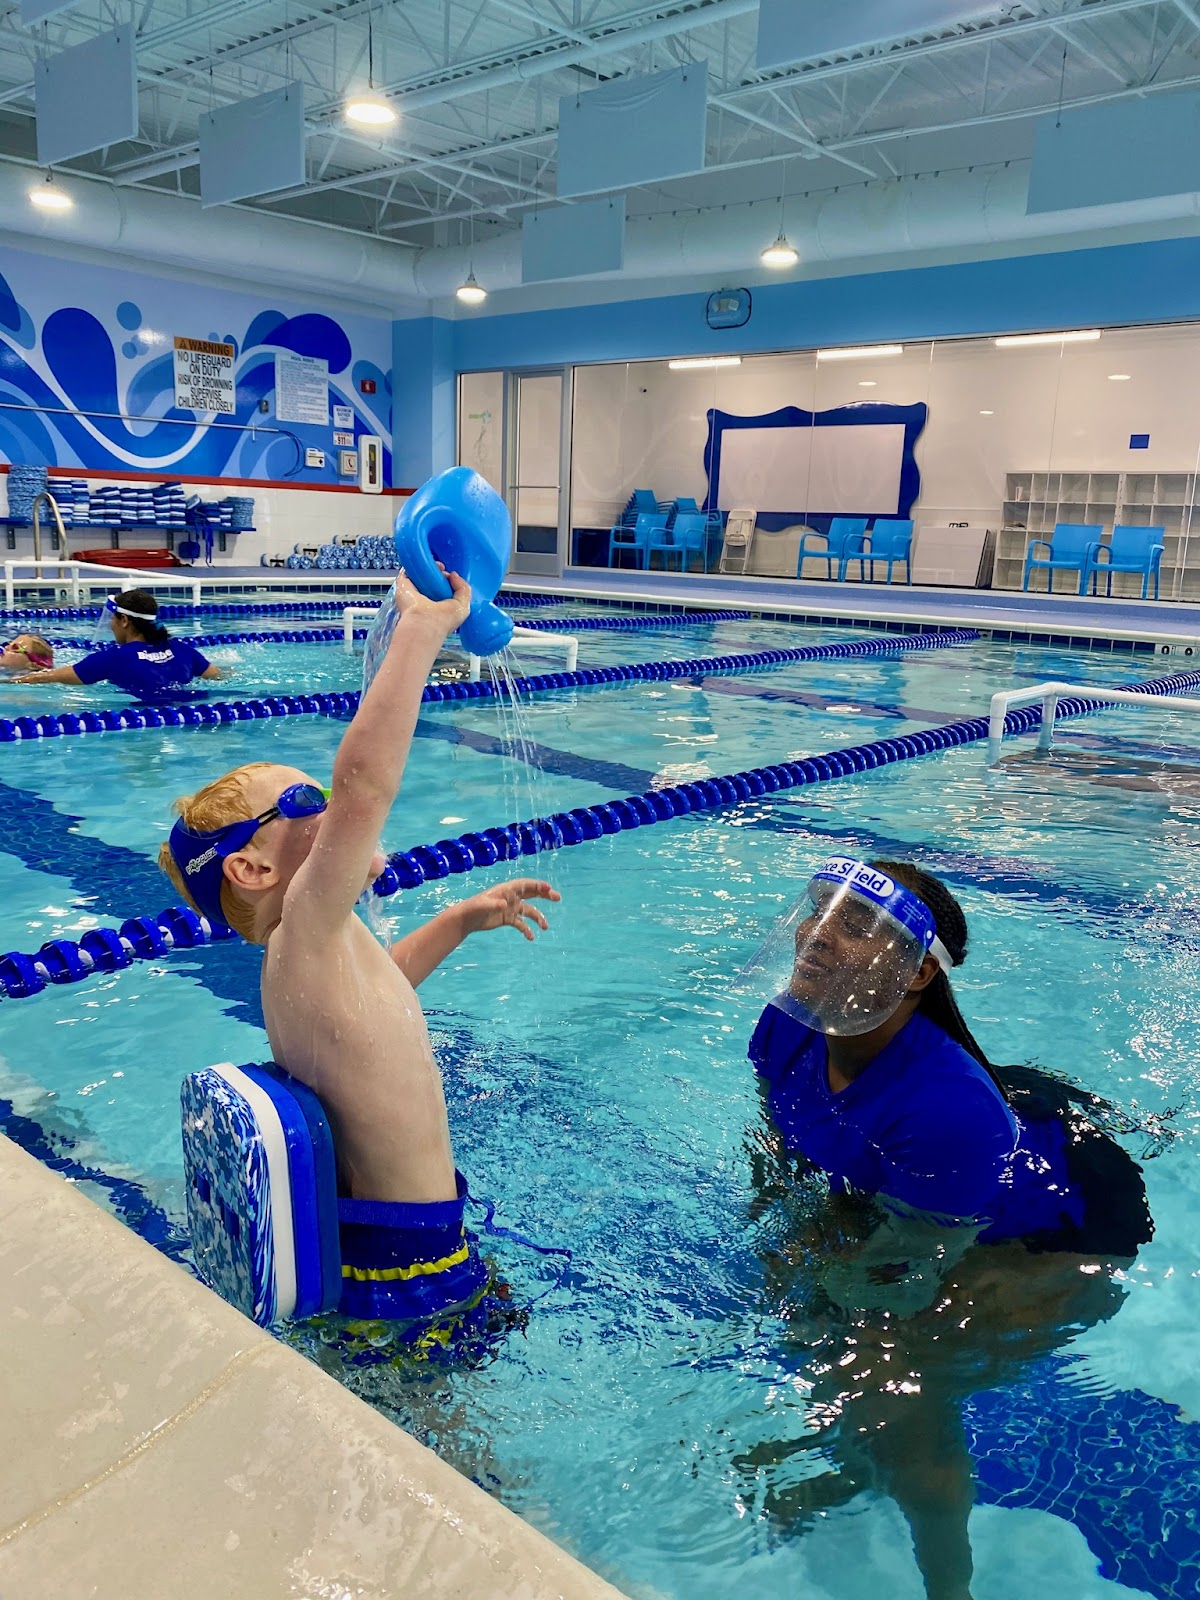 Swim Instructor wearing face shield in pool as Personal Protective Equipment (PPE)